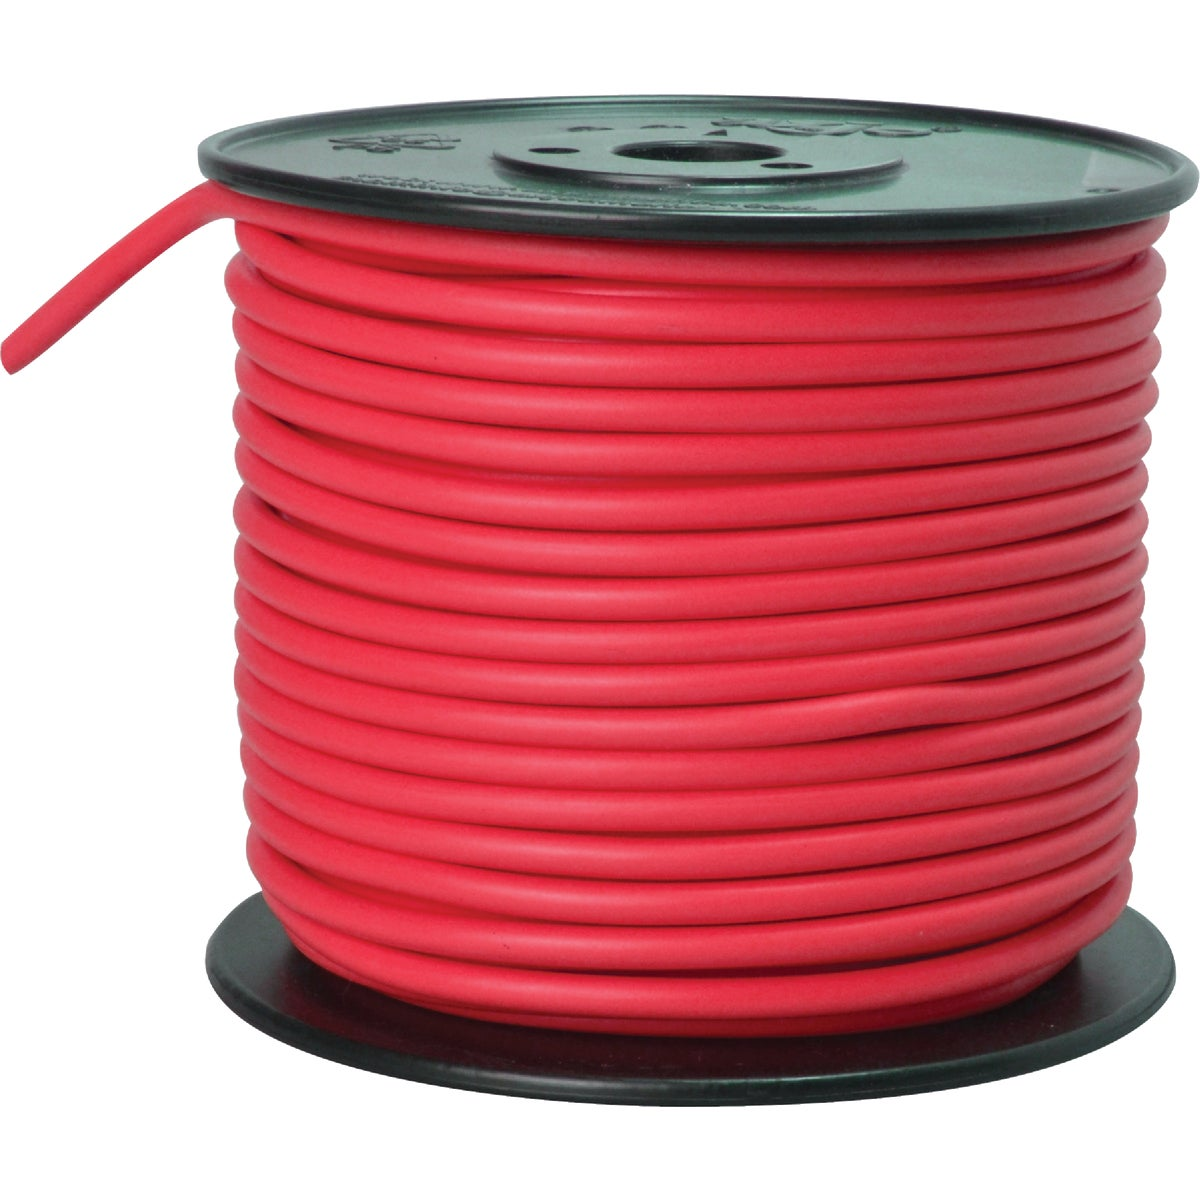 100' 10GA RED AUTO WIRE - 10-100-16 by Woods Wire Coleman